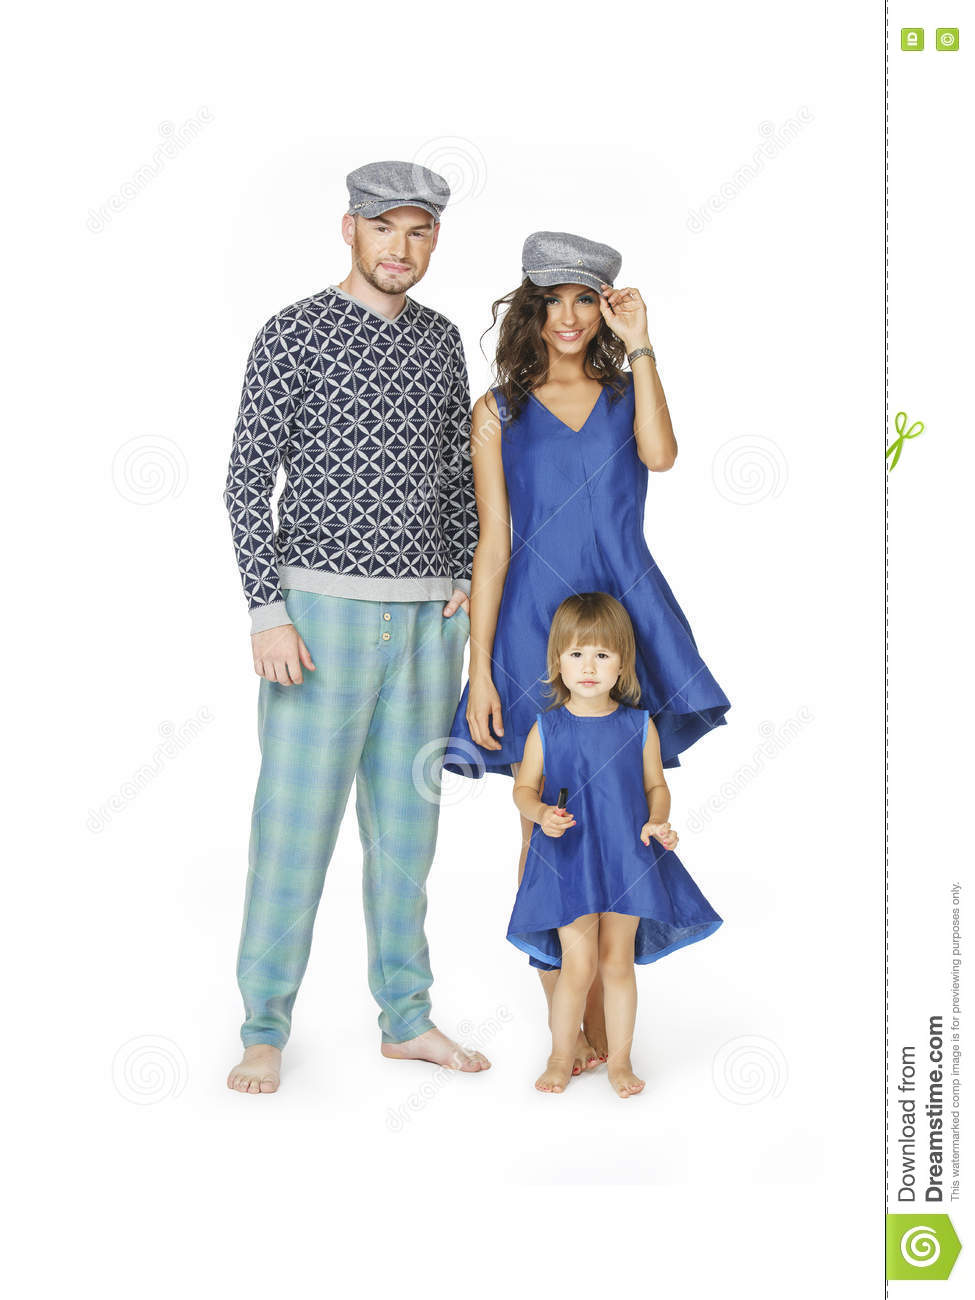 Happy Family In Fashion Clothes Stock Image Image Of Isolated Males 77605509